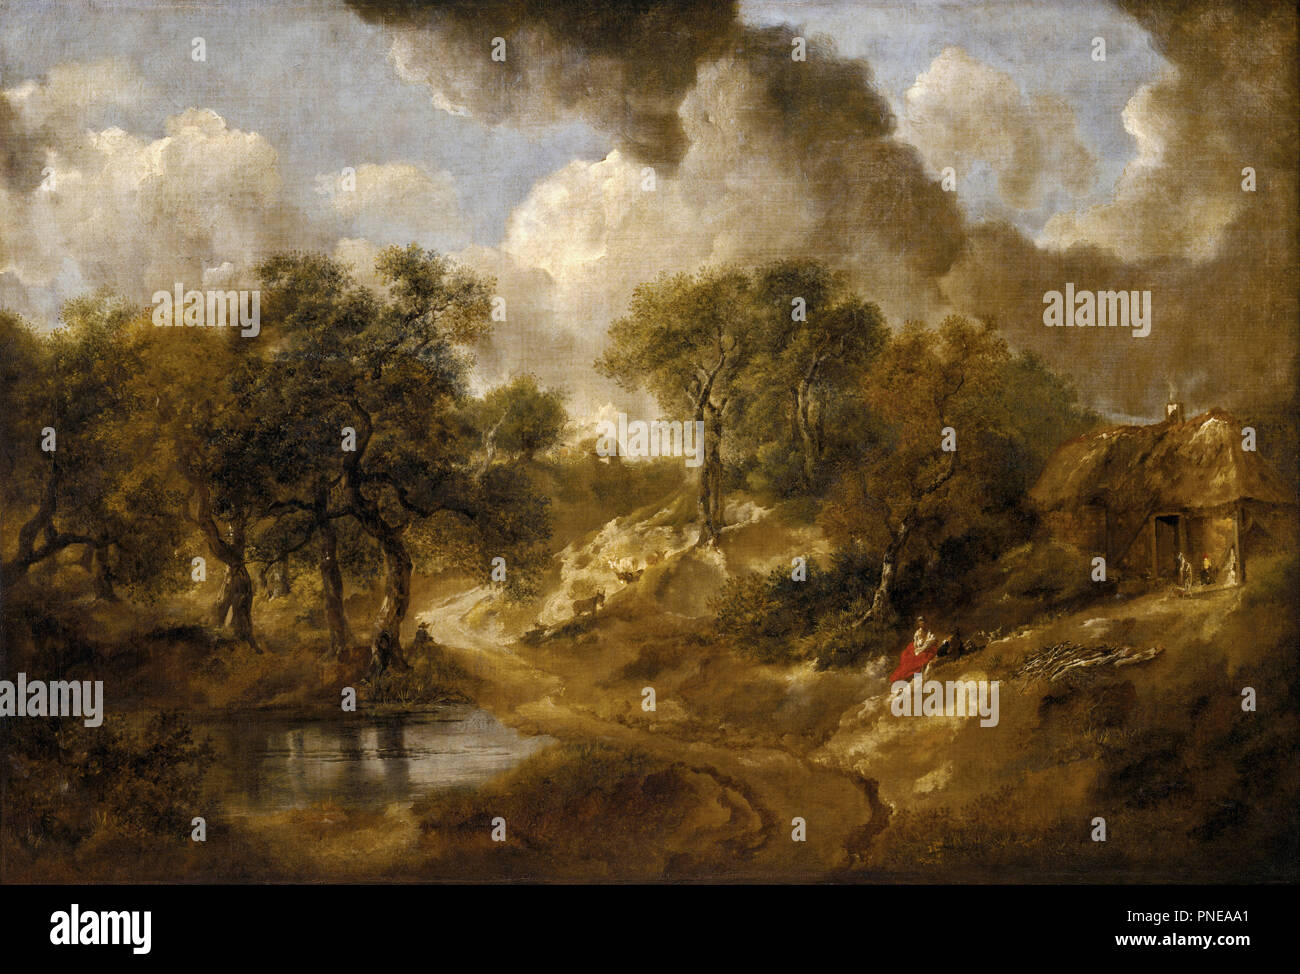 En. Date/Period: Between ca. 1746 and ca. 1750. Painting. Oil on canvas. Height: 660 mm (25.98 in); Width: 950 mm (37.40 in). Author: Thomas Gainsborough. GAINSBOROUGH, THOMAS. Stock Photo